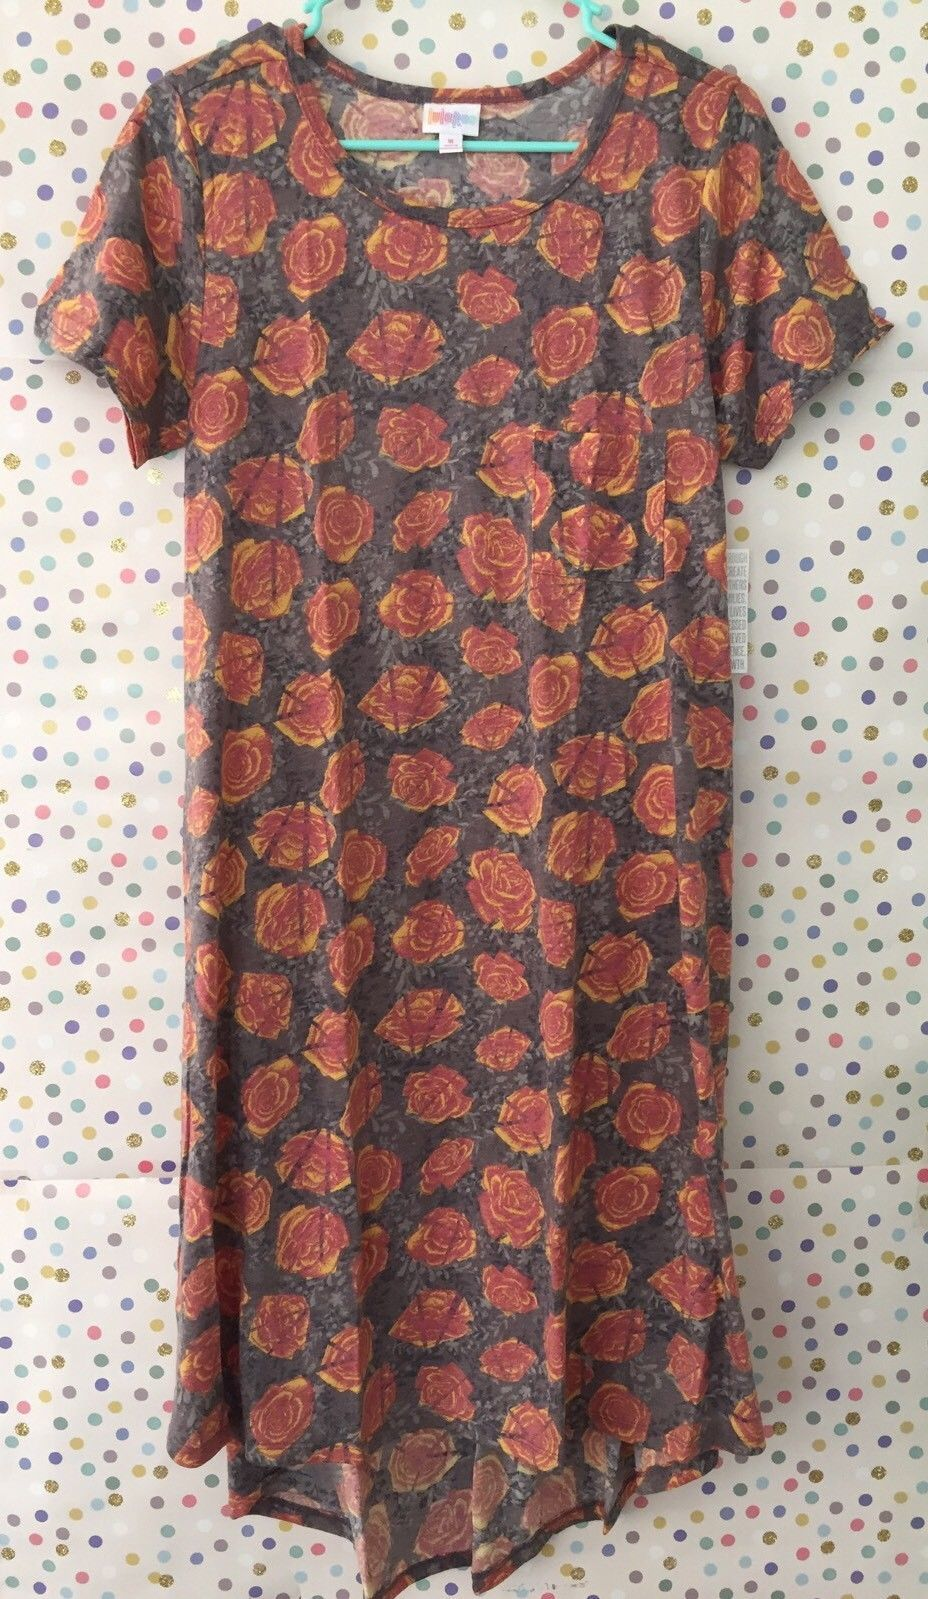 $  42.80 (30 Bids)End Date: Aug-31 18:00Bid now  |  Add to watch listBuy this on eBay (Category:Women's Clothing)...